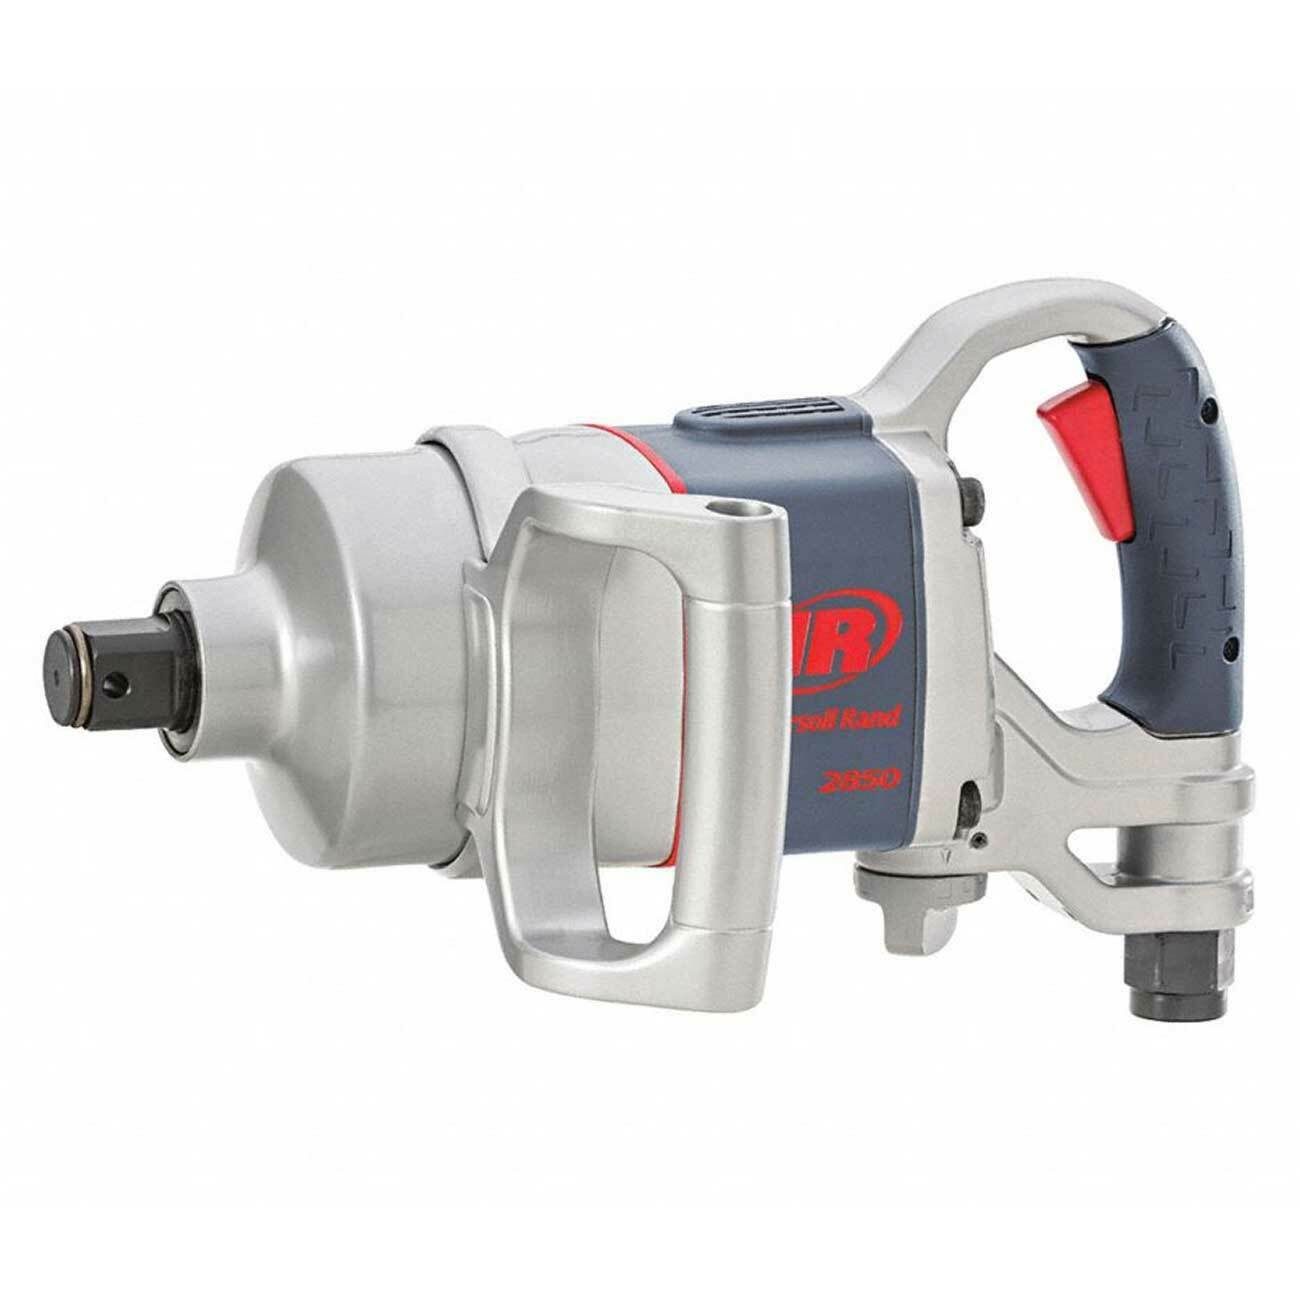 Ingersoll-Rand 2850MAX Impact Wrench 1 D HANDLE. Available Now for 805.00